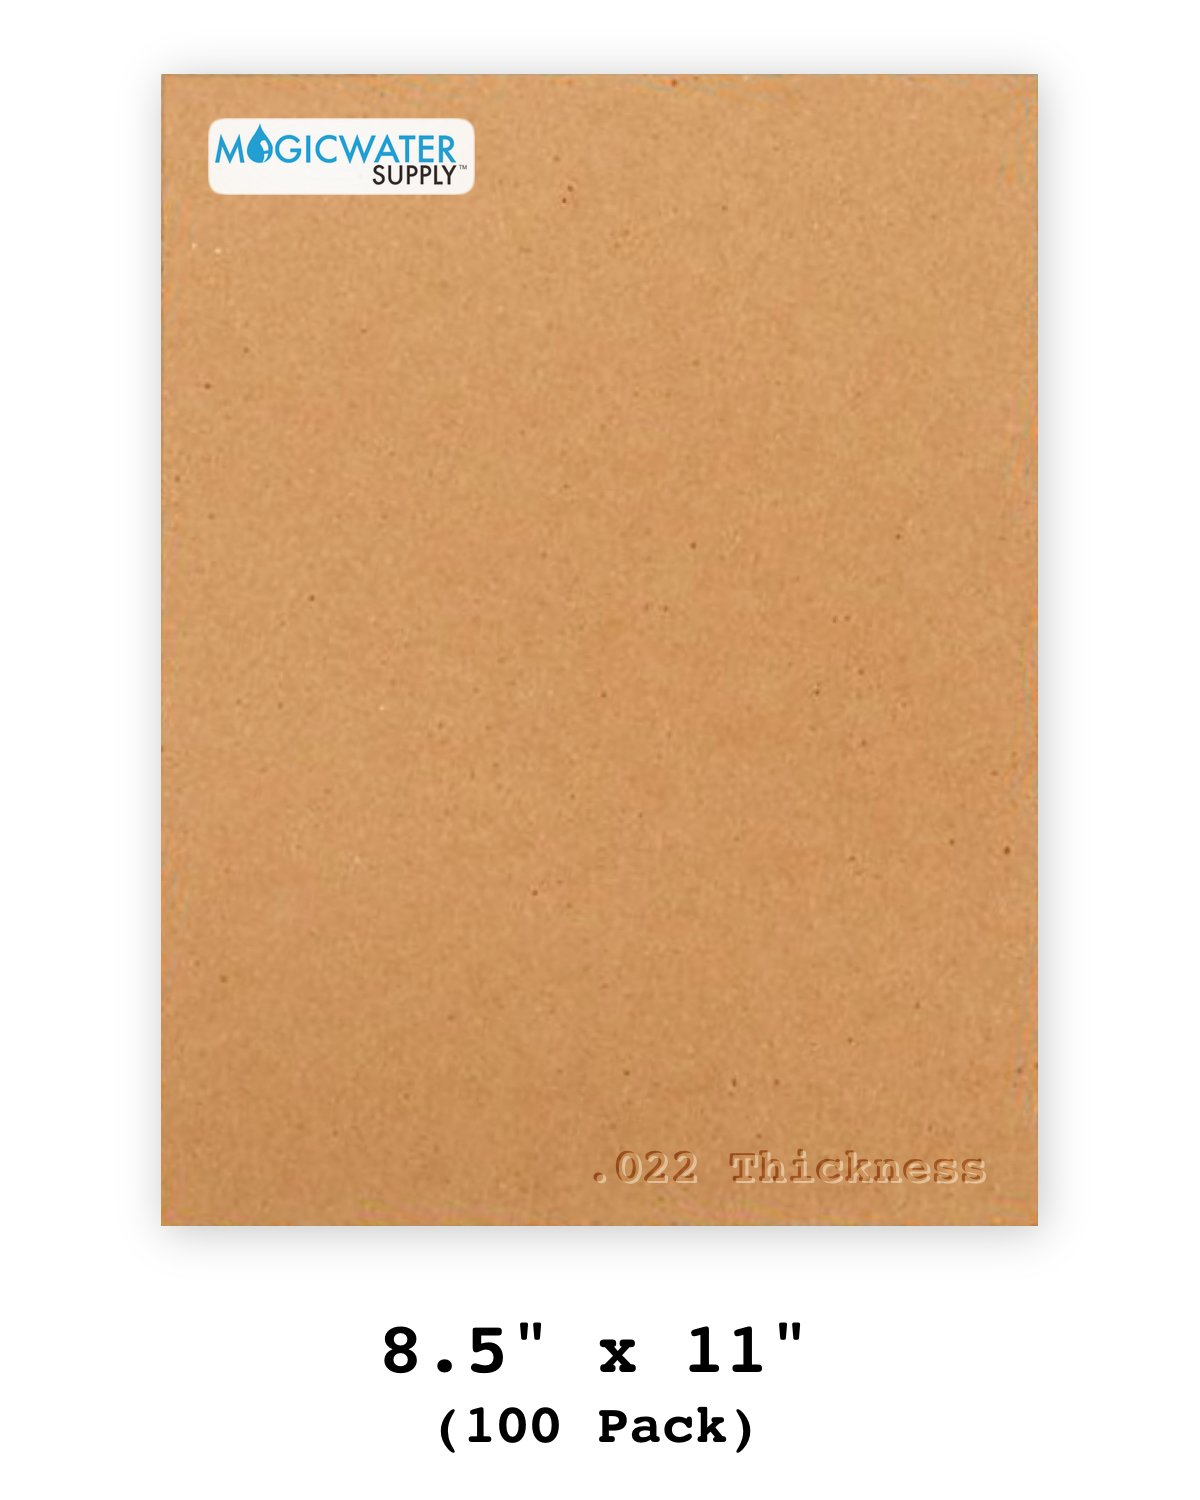 100 Chipboard Sheets 8.5 x 11 inch - 22pt (Point) Light Weight Brown Kraft Cardboard for Scrapbooking & Picture Frame Backing (.022 Caliper Thick) Paper Board | MagicWater Supply